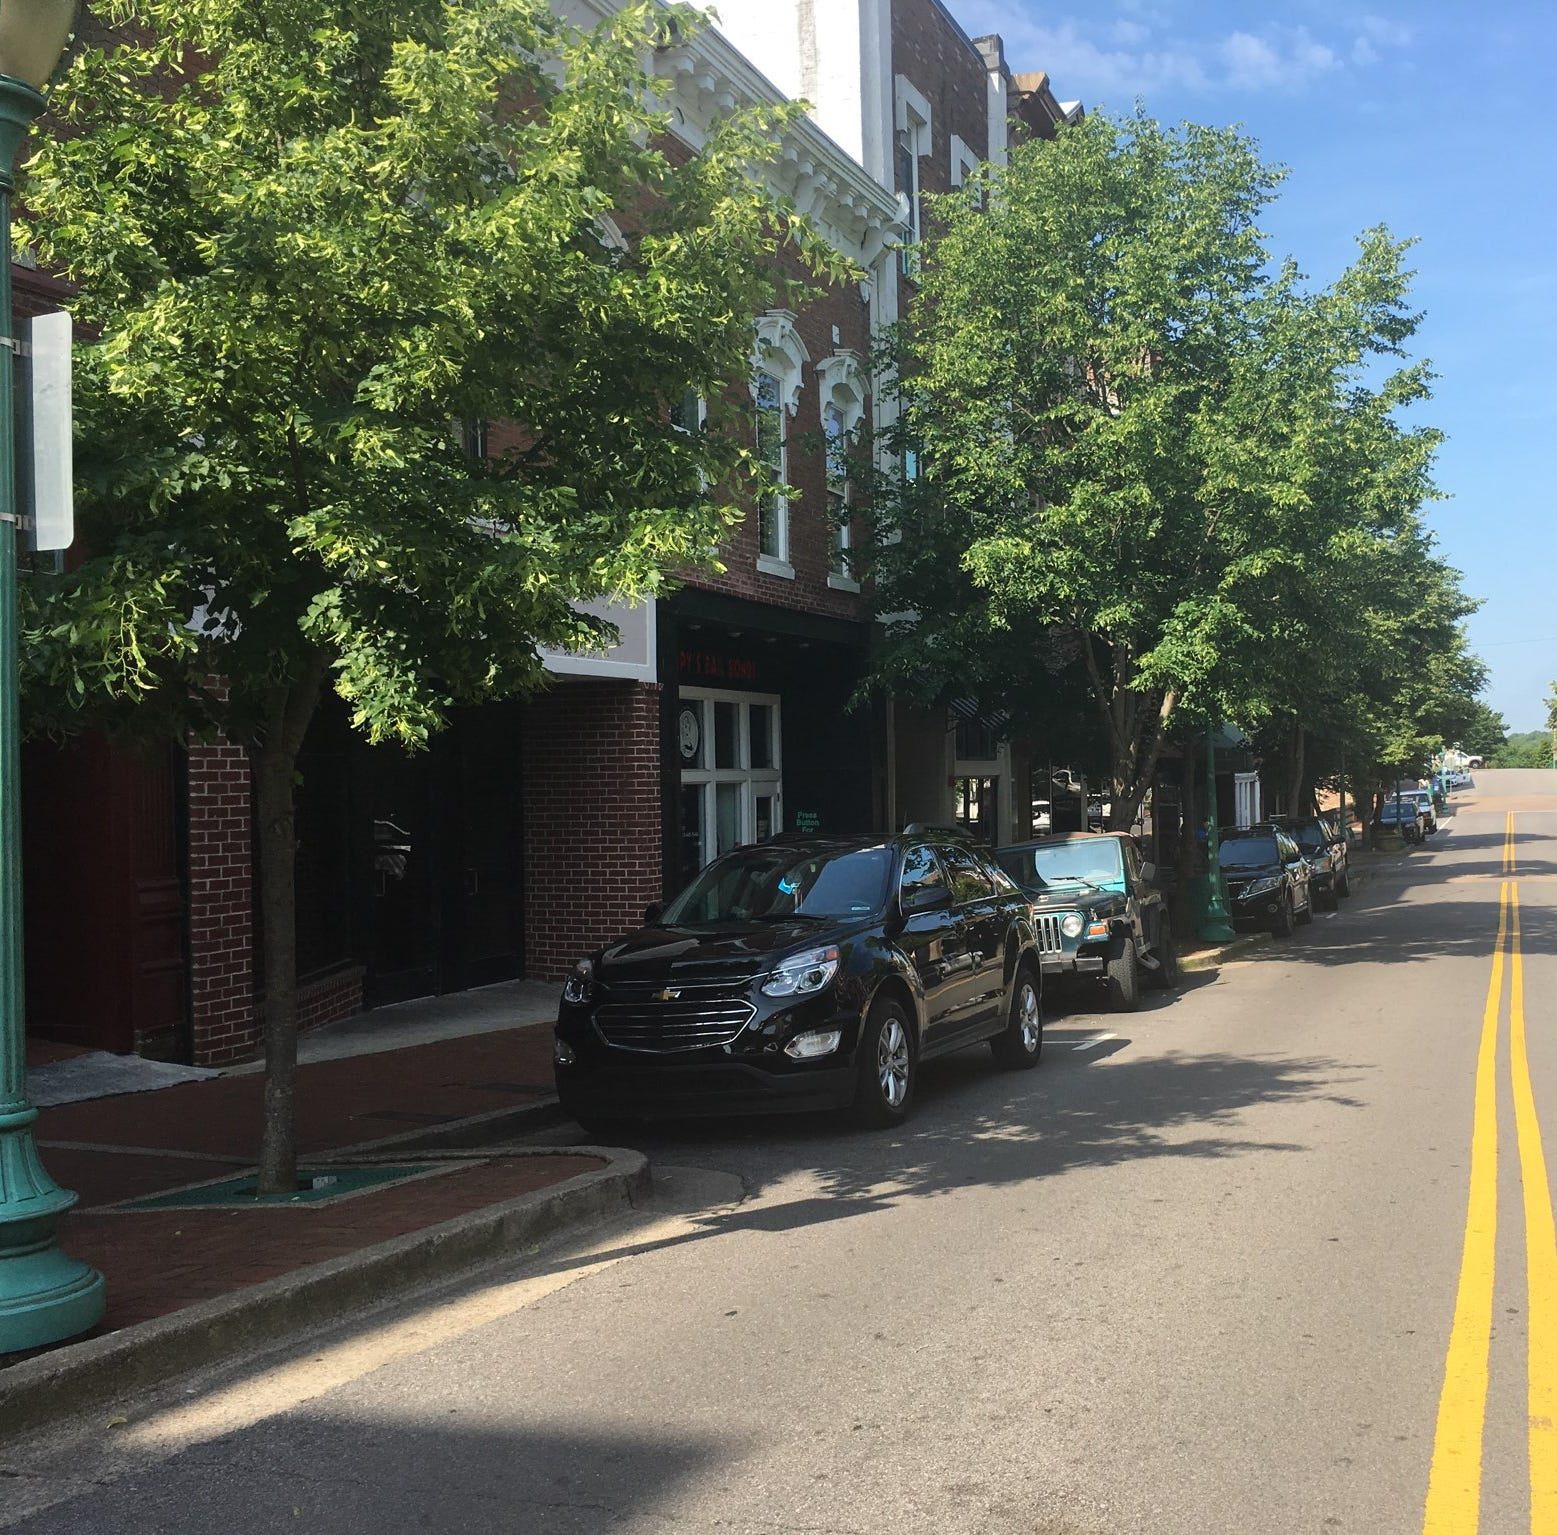 Clarksville city workers to remove and replace 30 trees downtown